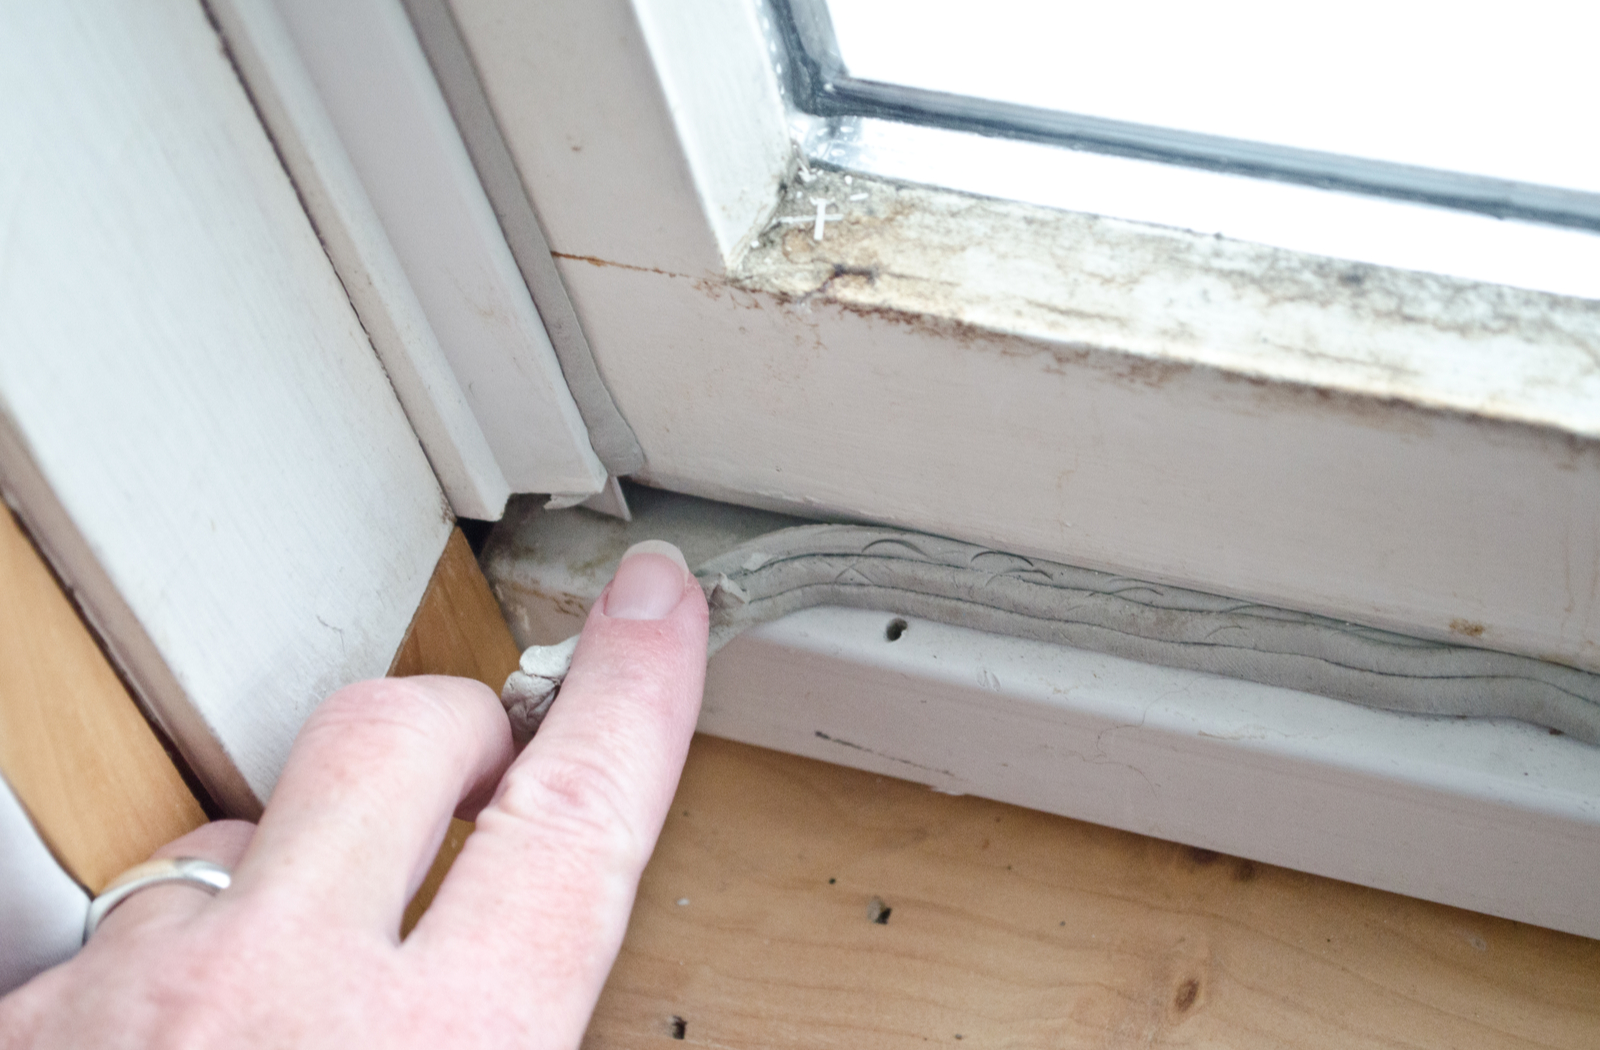 wWoman's hand pulling back loose caulking causing heat loss